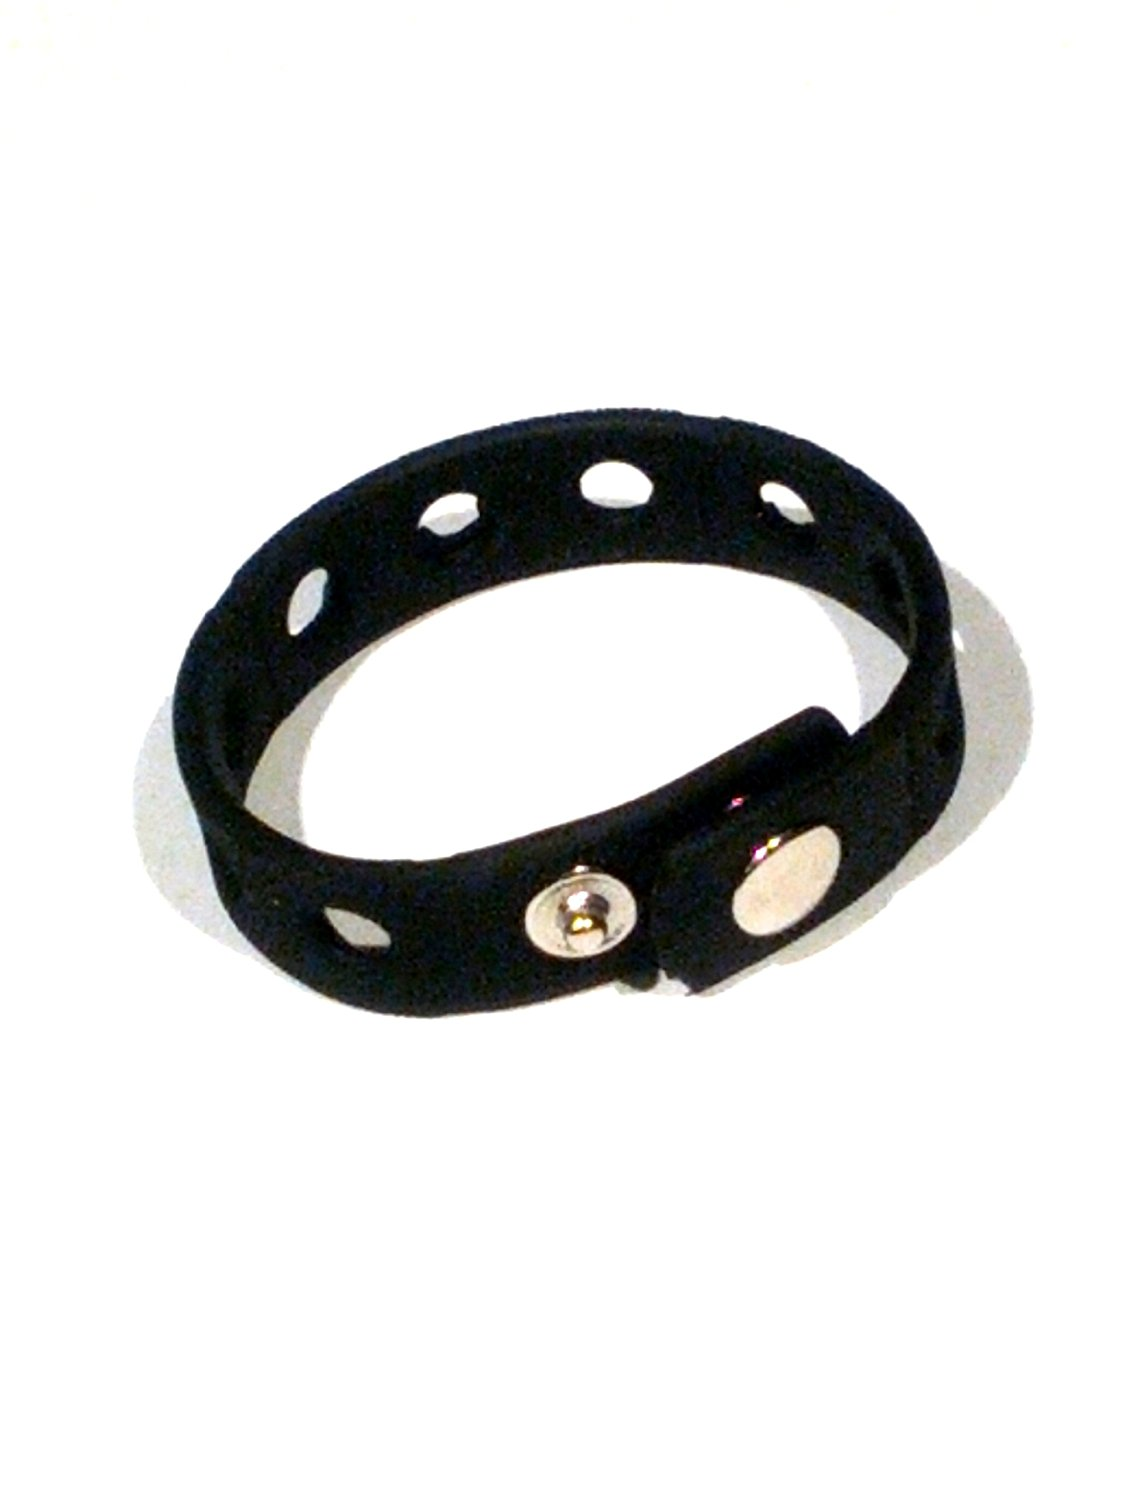 "7"" Black Rubber Bracelet Wristband for Shoe Jibbitz Crocs Charms"